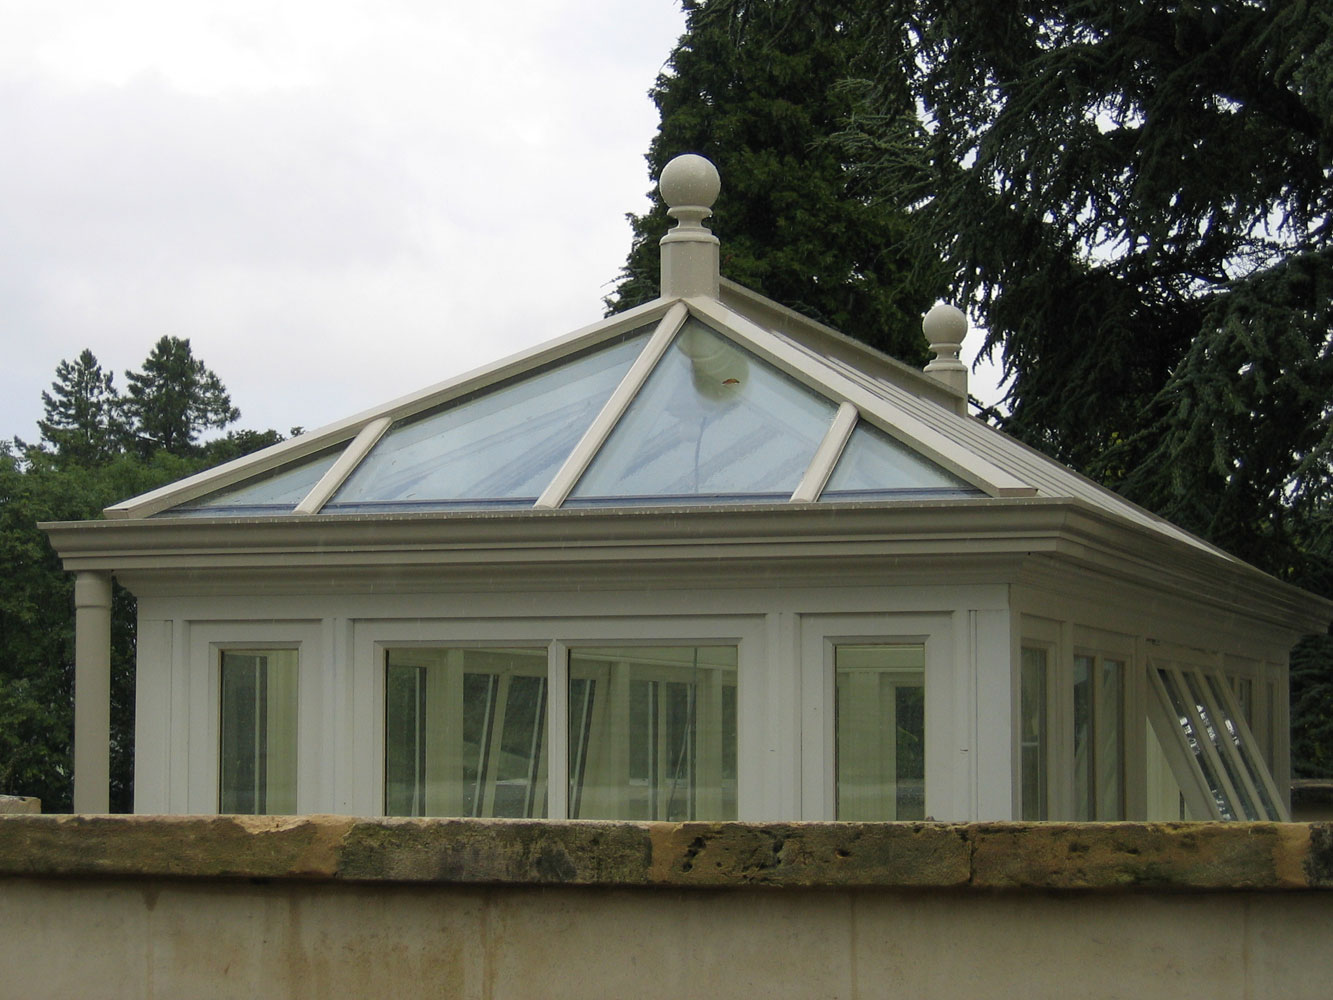 End elevation of a roof lantern with side frames